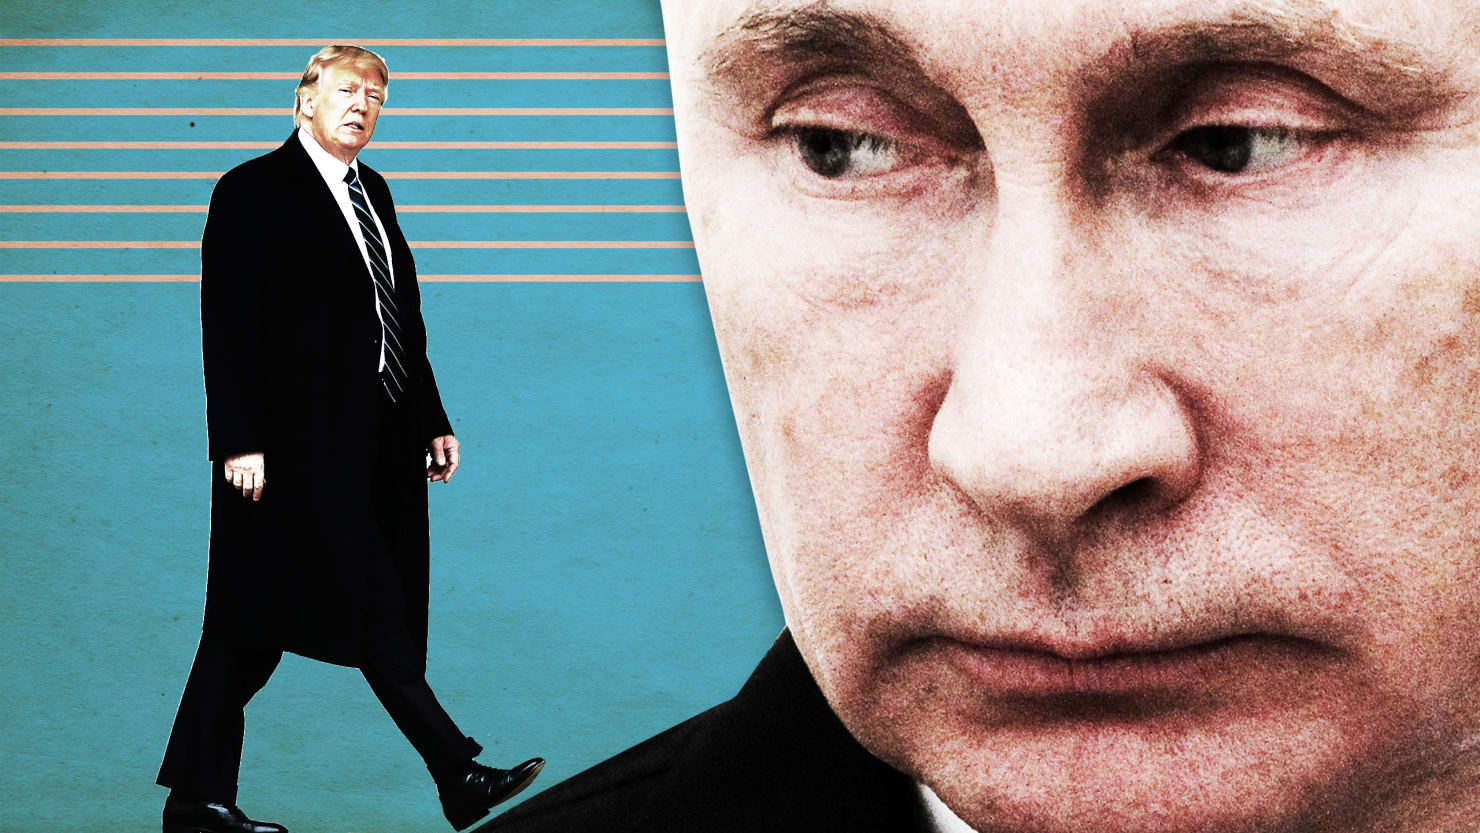 Russia's Subversion Campaign Said A Lot More About Us Than Them